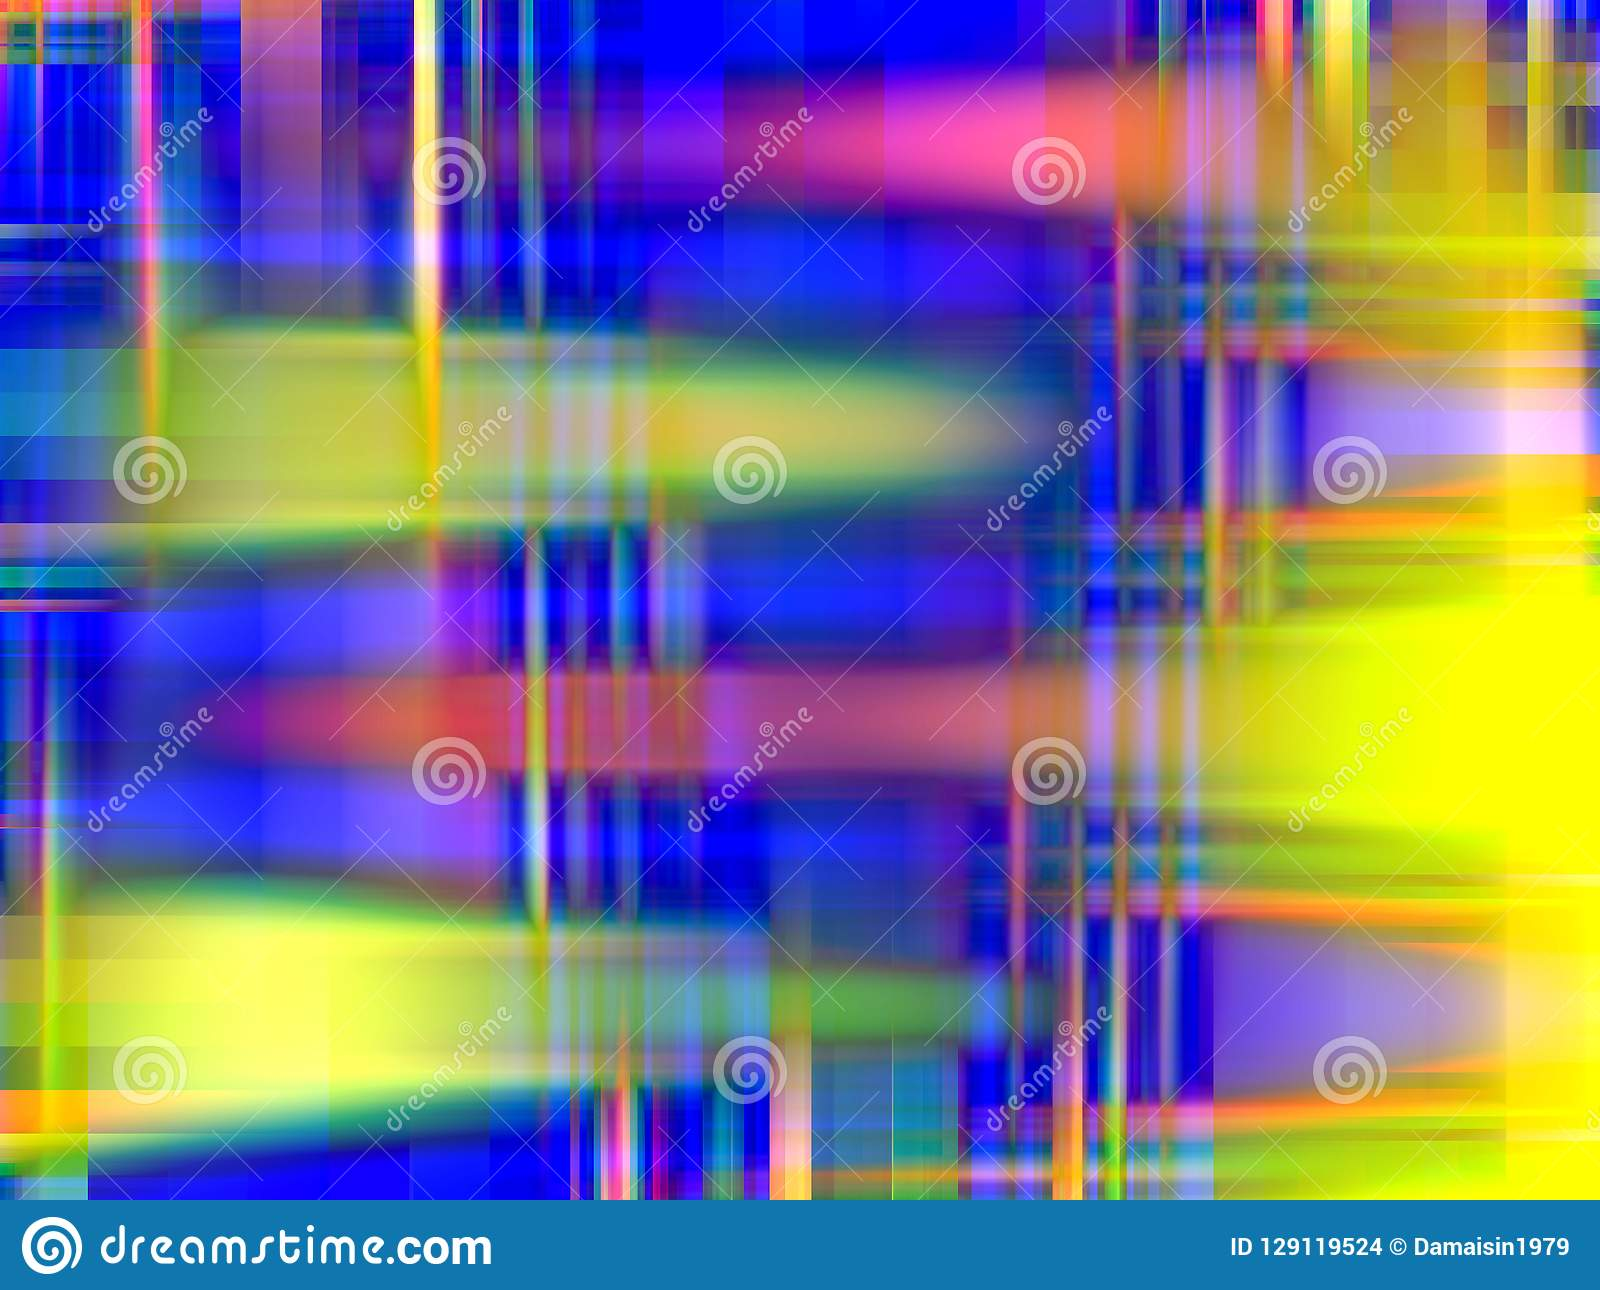 Rainbow blue yellow pink lights background graphics, abstract background and texture